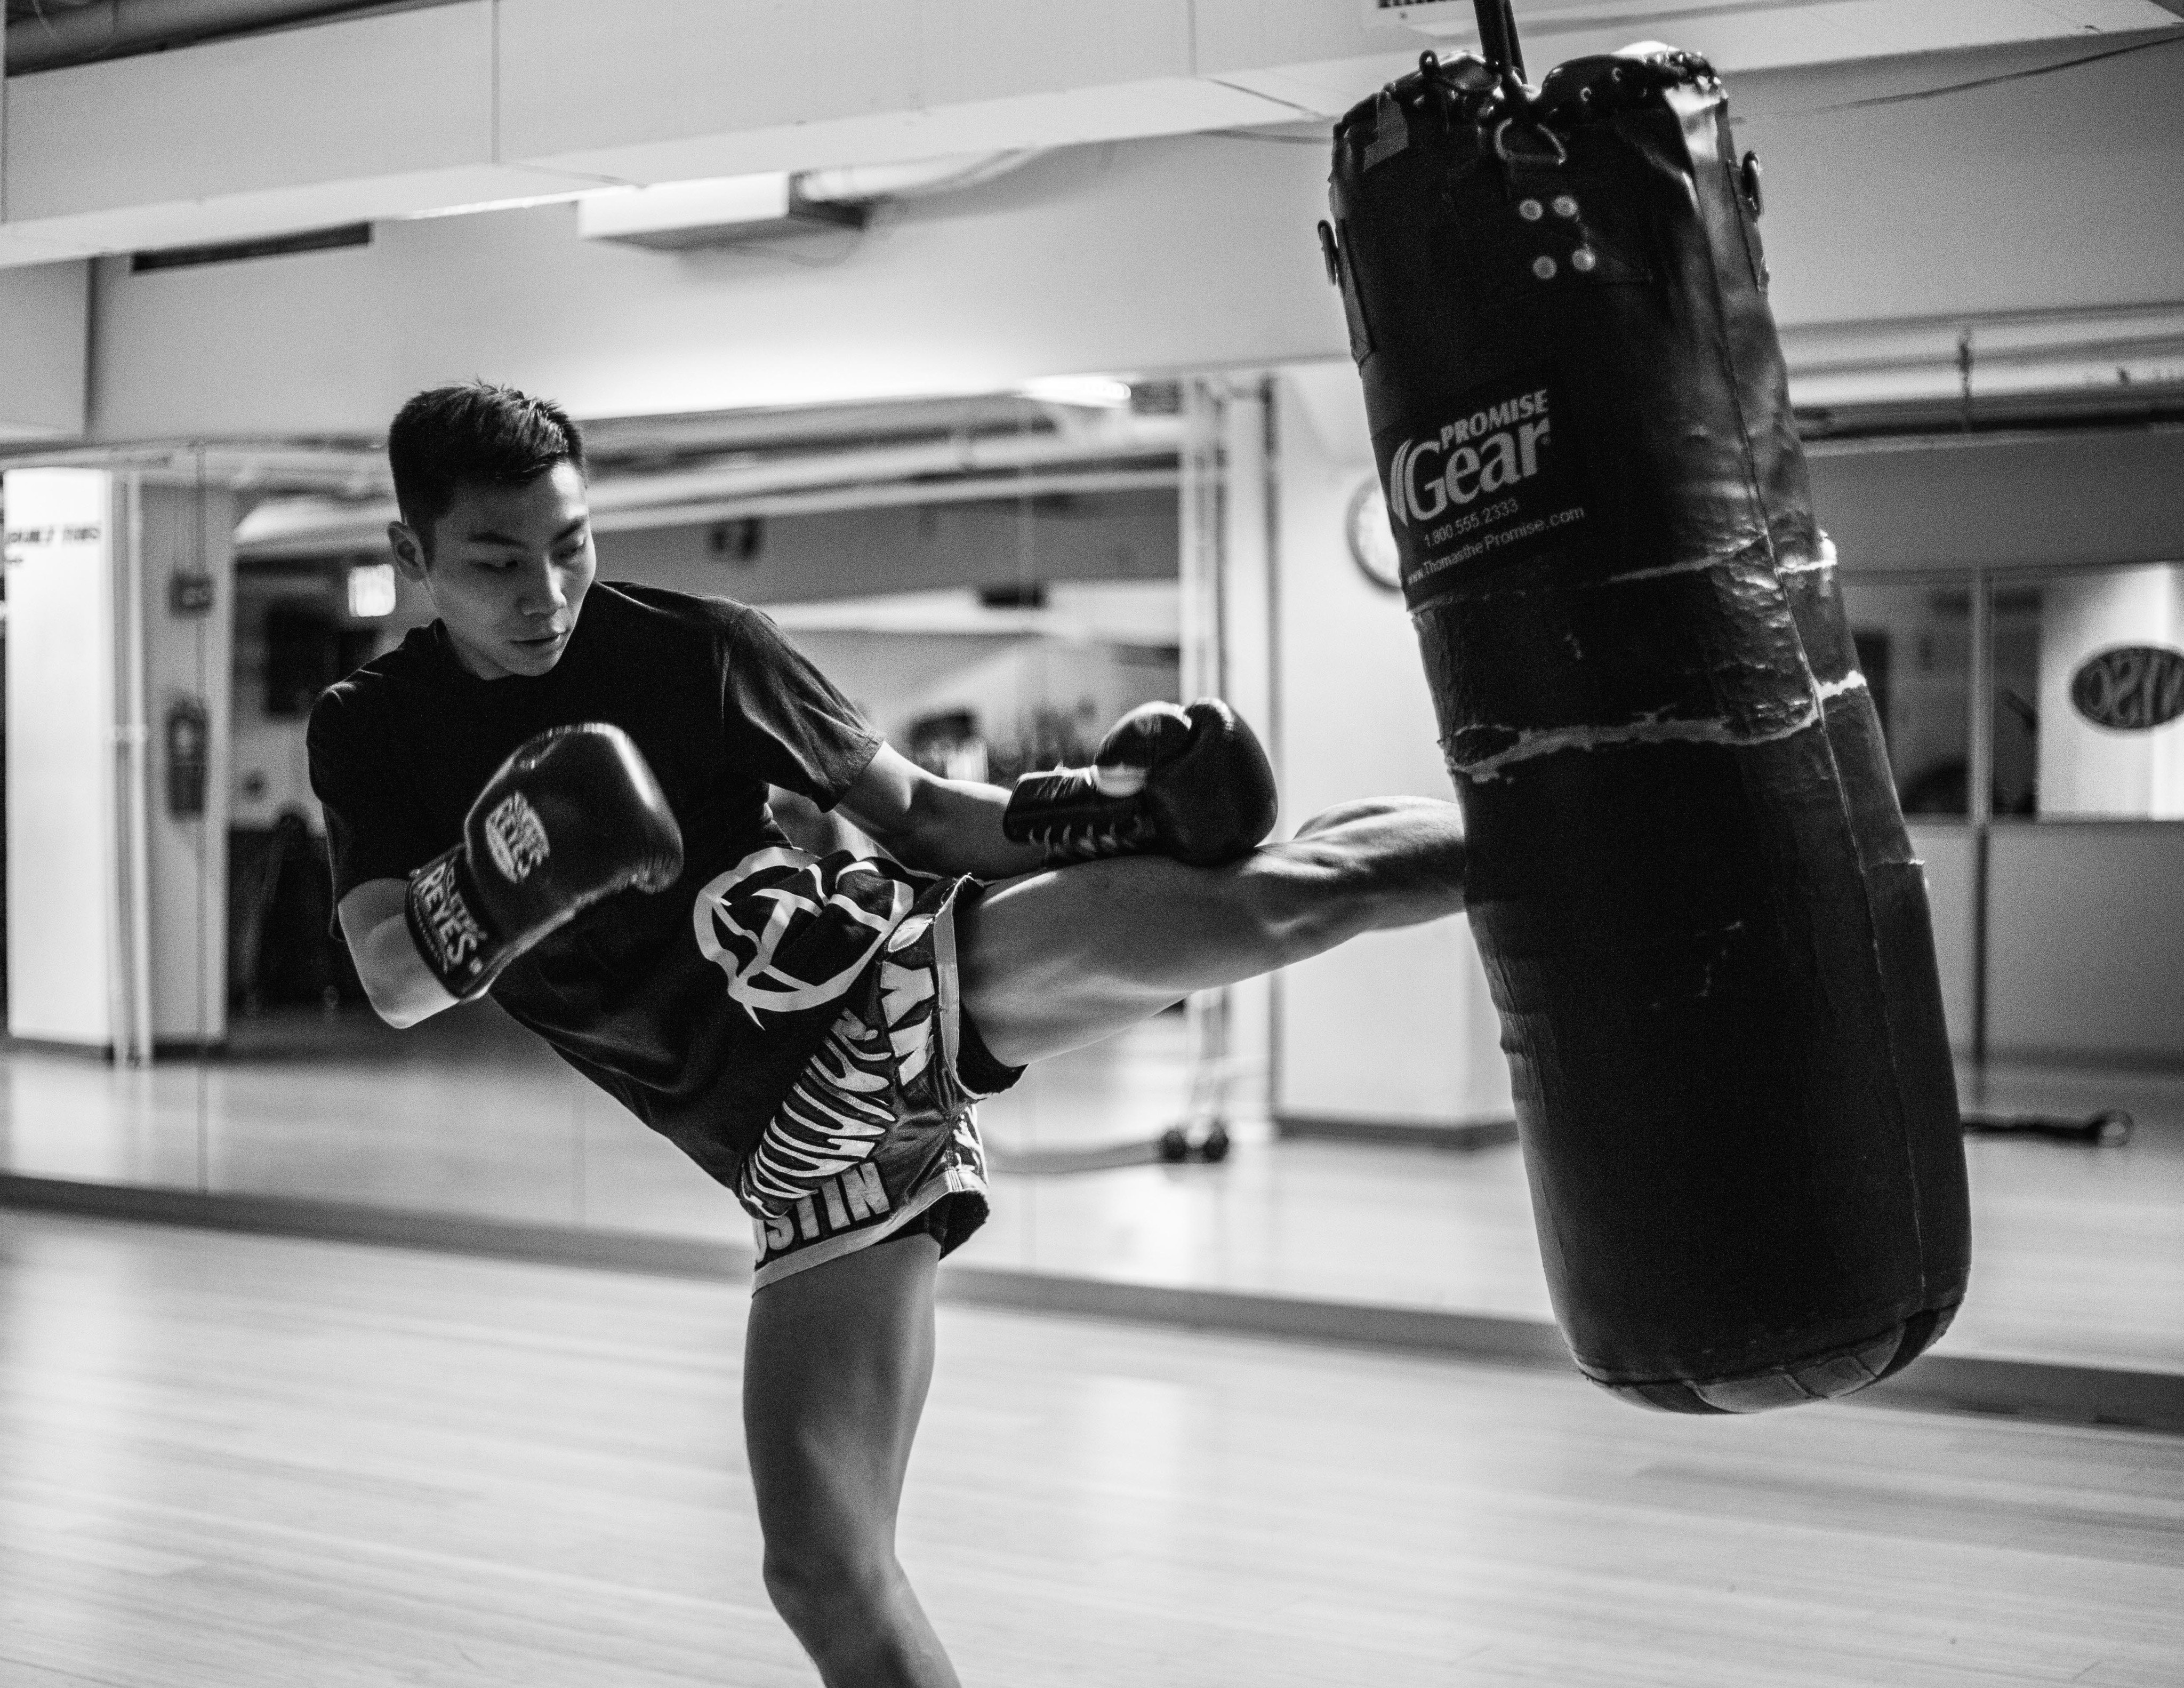 I Tried ILove Kickboxing And The Workout Was Great, The